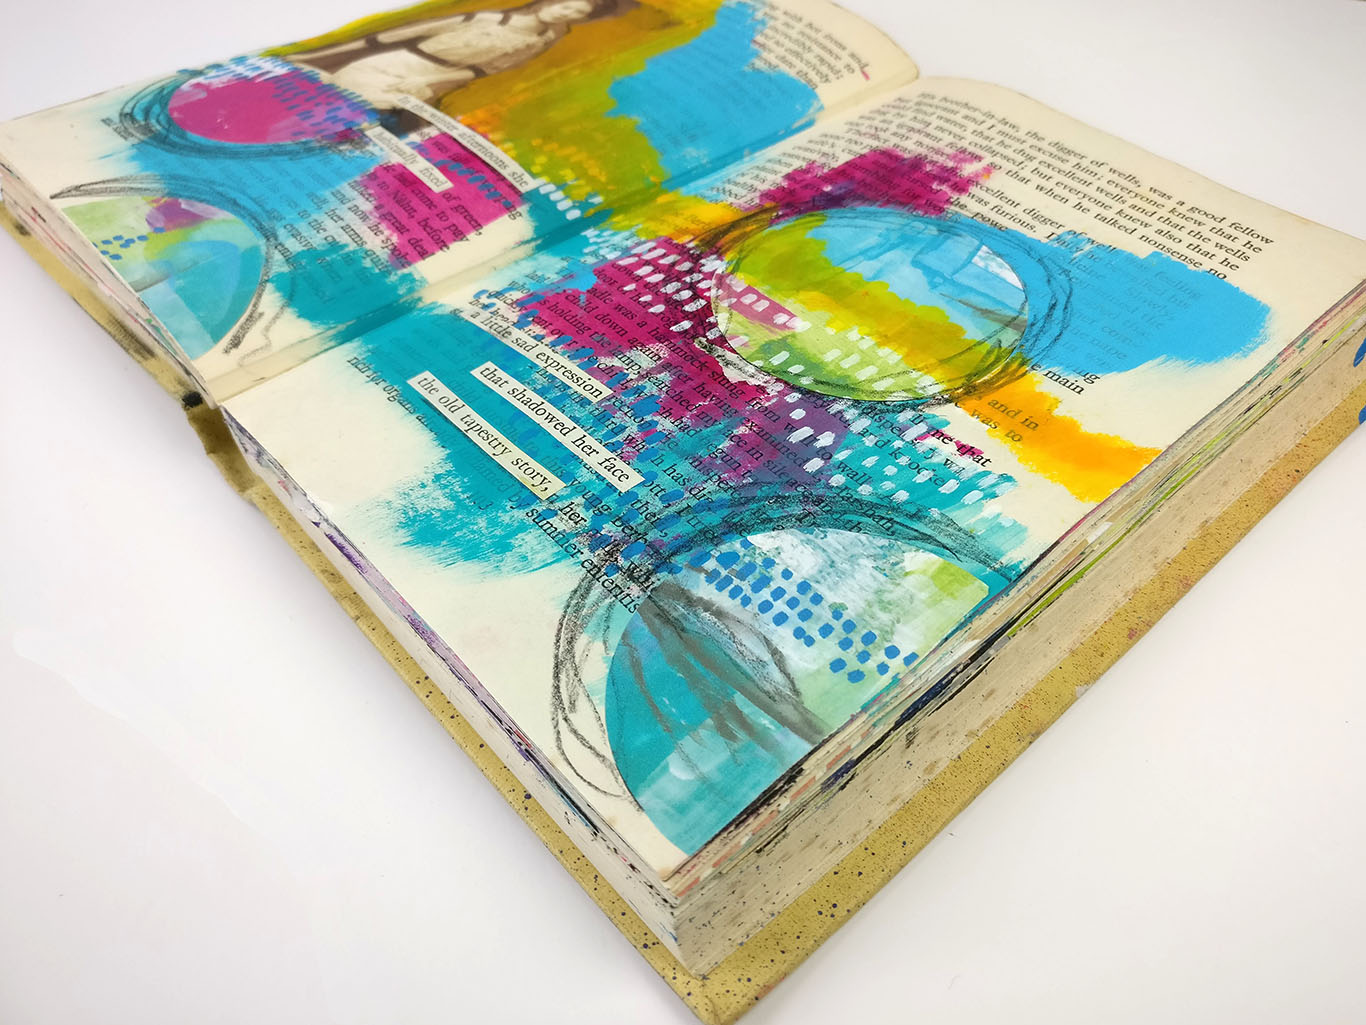 Altered Book Art Techniques | My Top Five Tips  Hands up all my impatient and often lazy artists? Is it just me or does prepping things for forever just put you right off getting started? When I first looked at altered book they just seemed like so much work before you even started! Well I couldn't be doing with that so I am sharing my top five tips for working inside an altered book